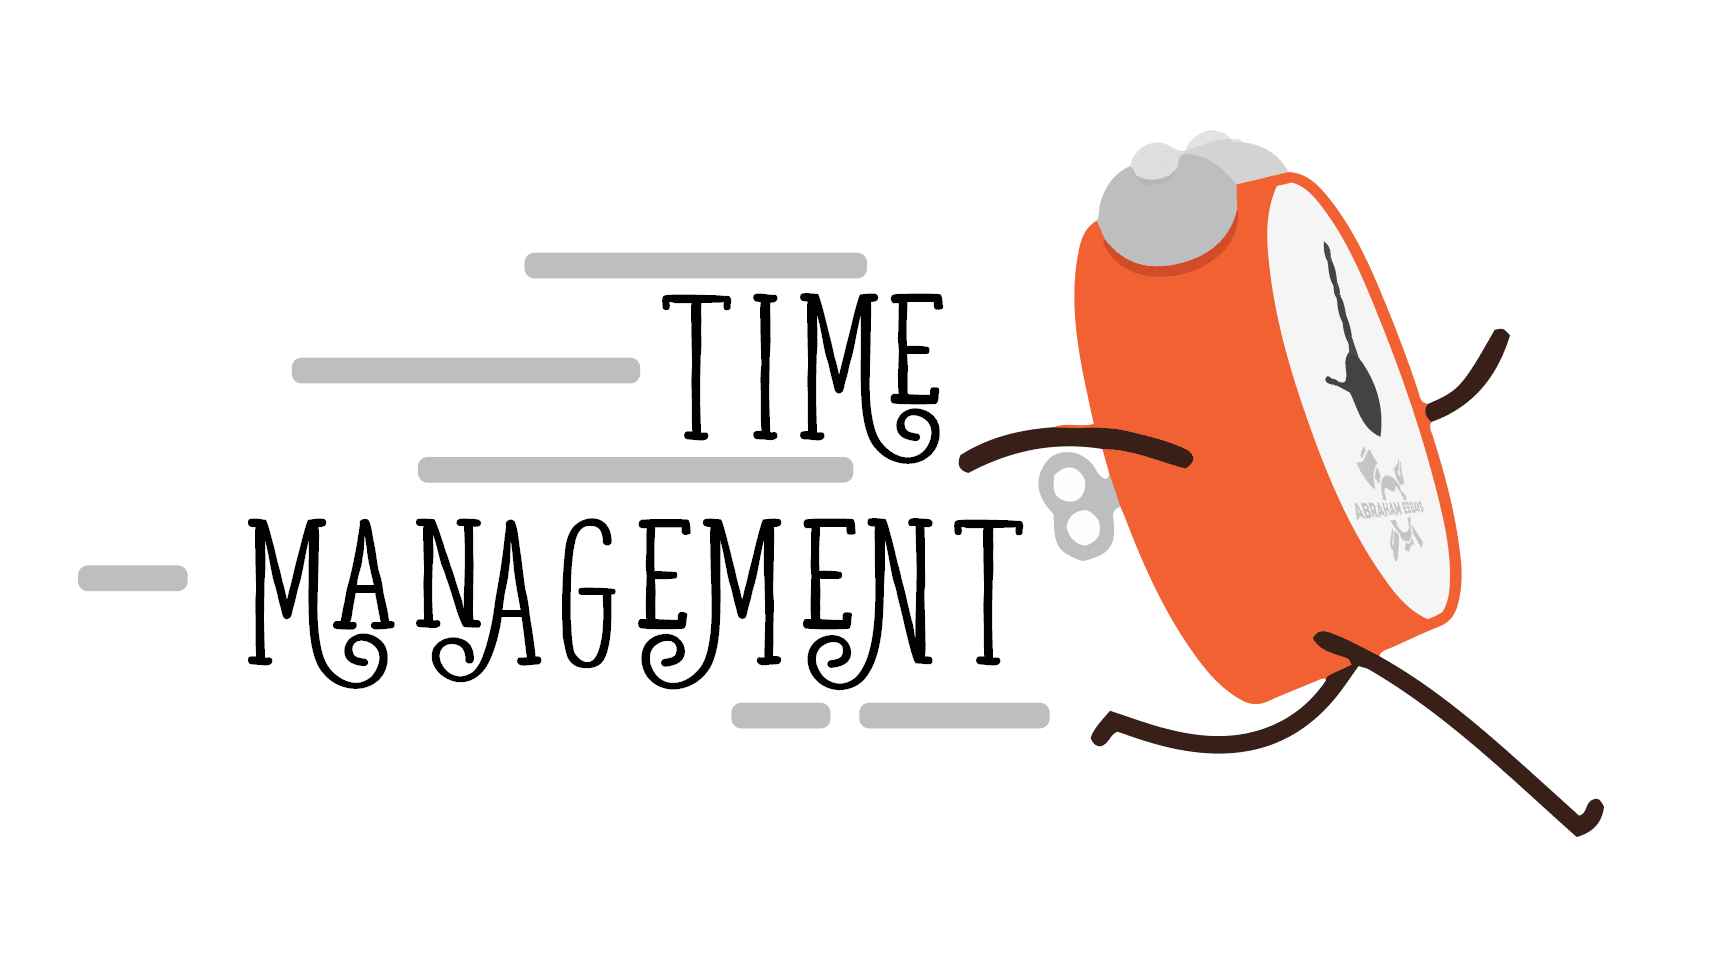 How to: Time Management